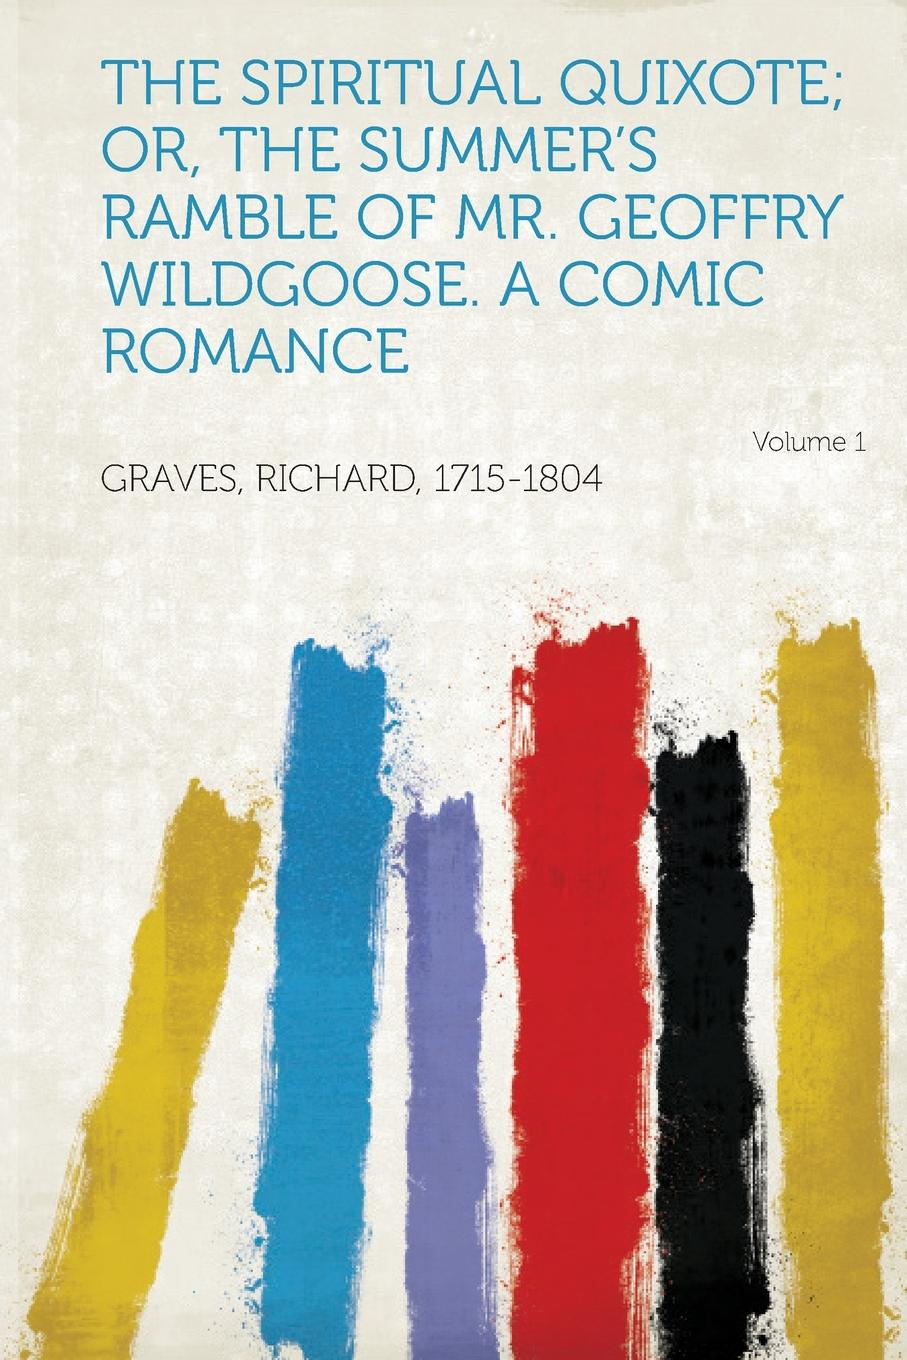 The Spiritual Quixote; Or, the Summer.s Ramble of Mr. Geoffry Wildgoose. a Comic Romance Volume 1 al capp s complete shmoo volume 1 the comic books